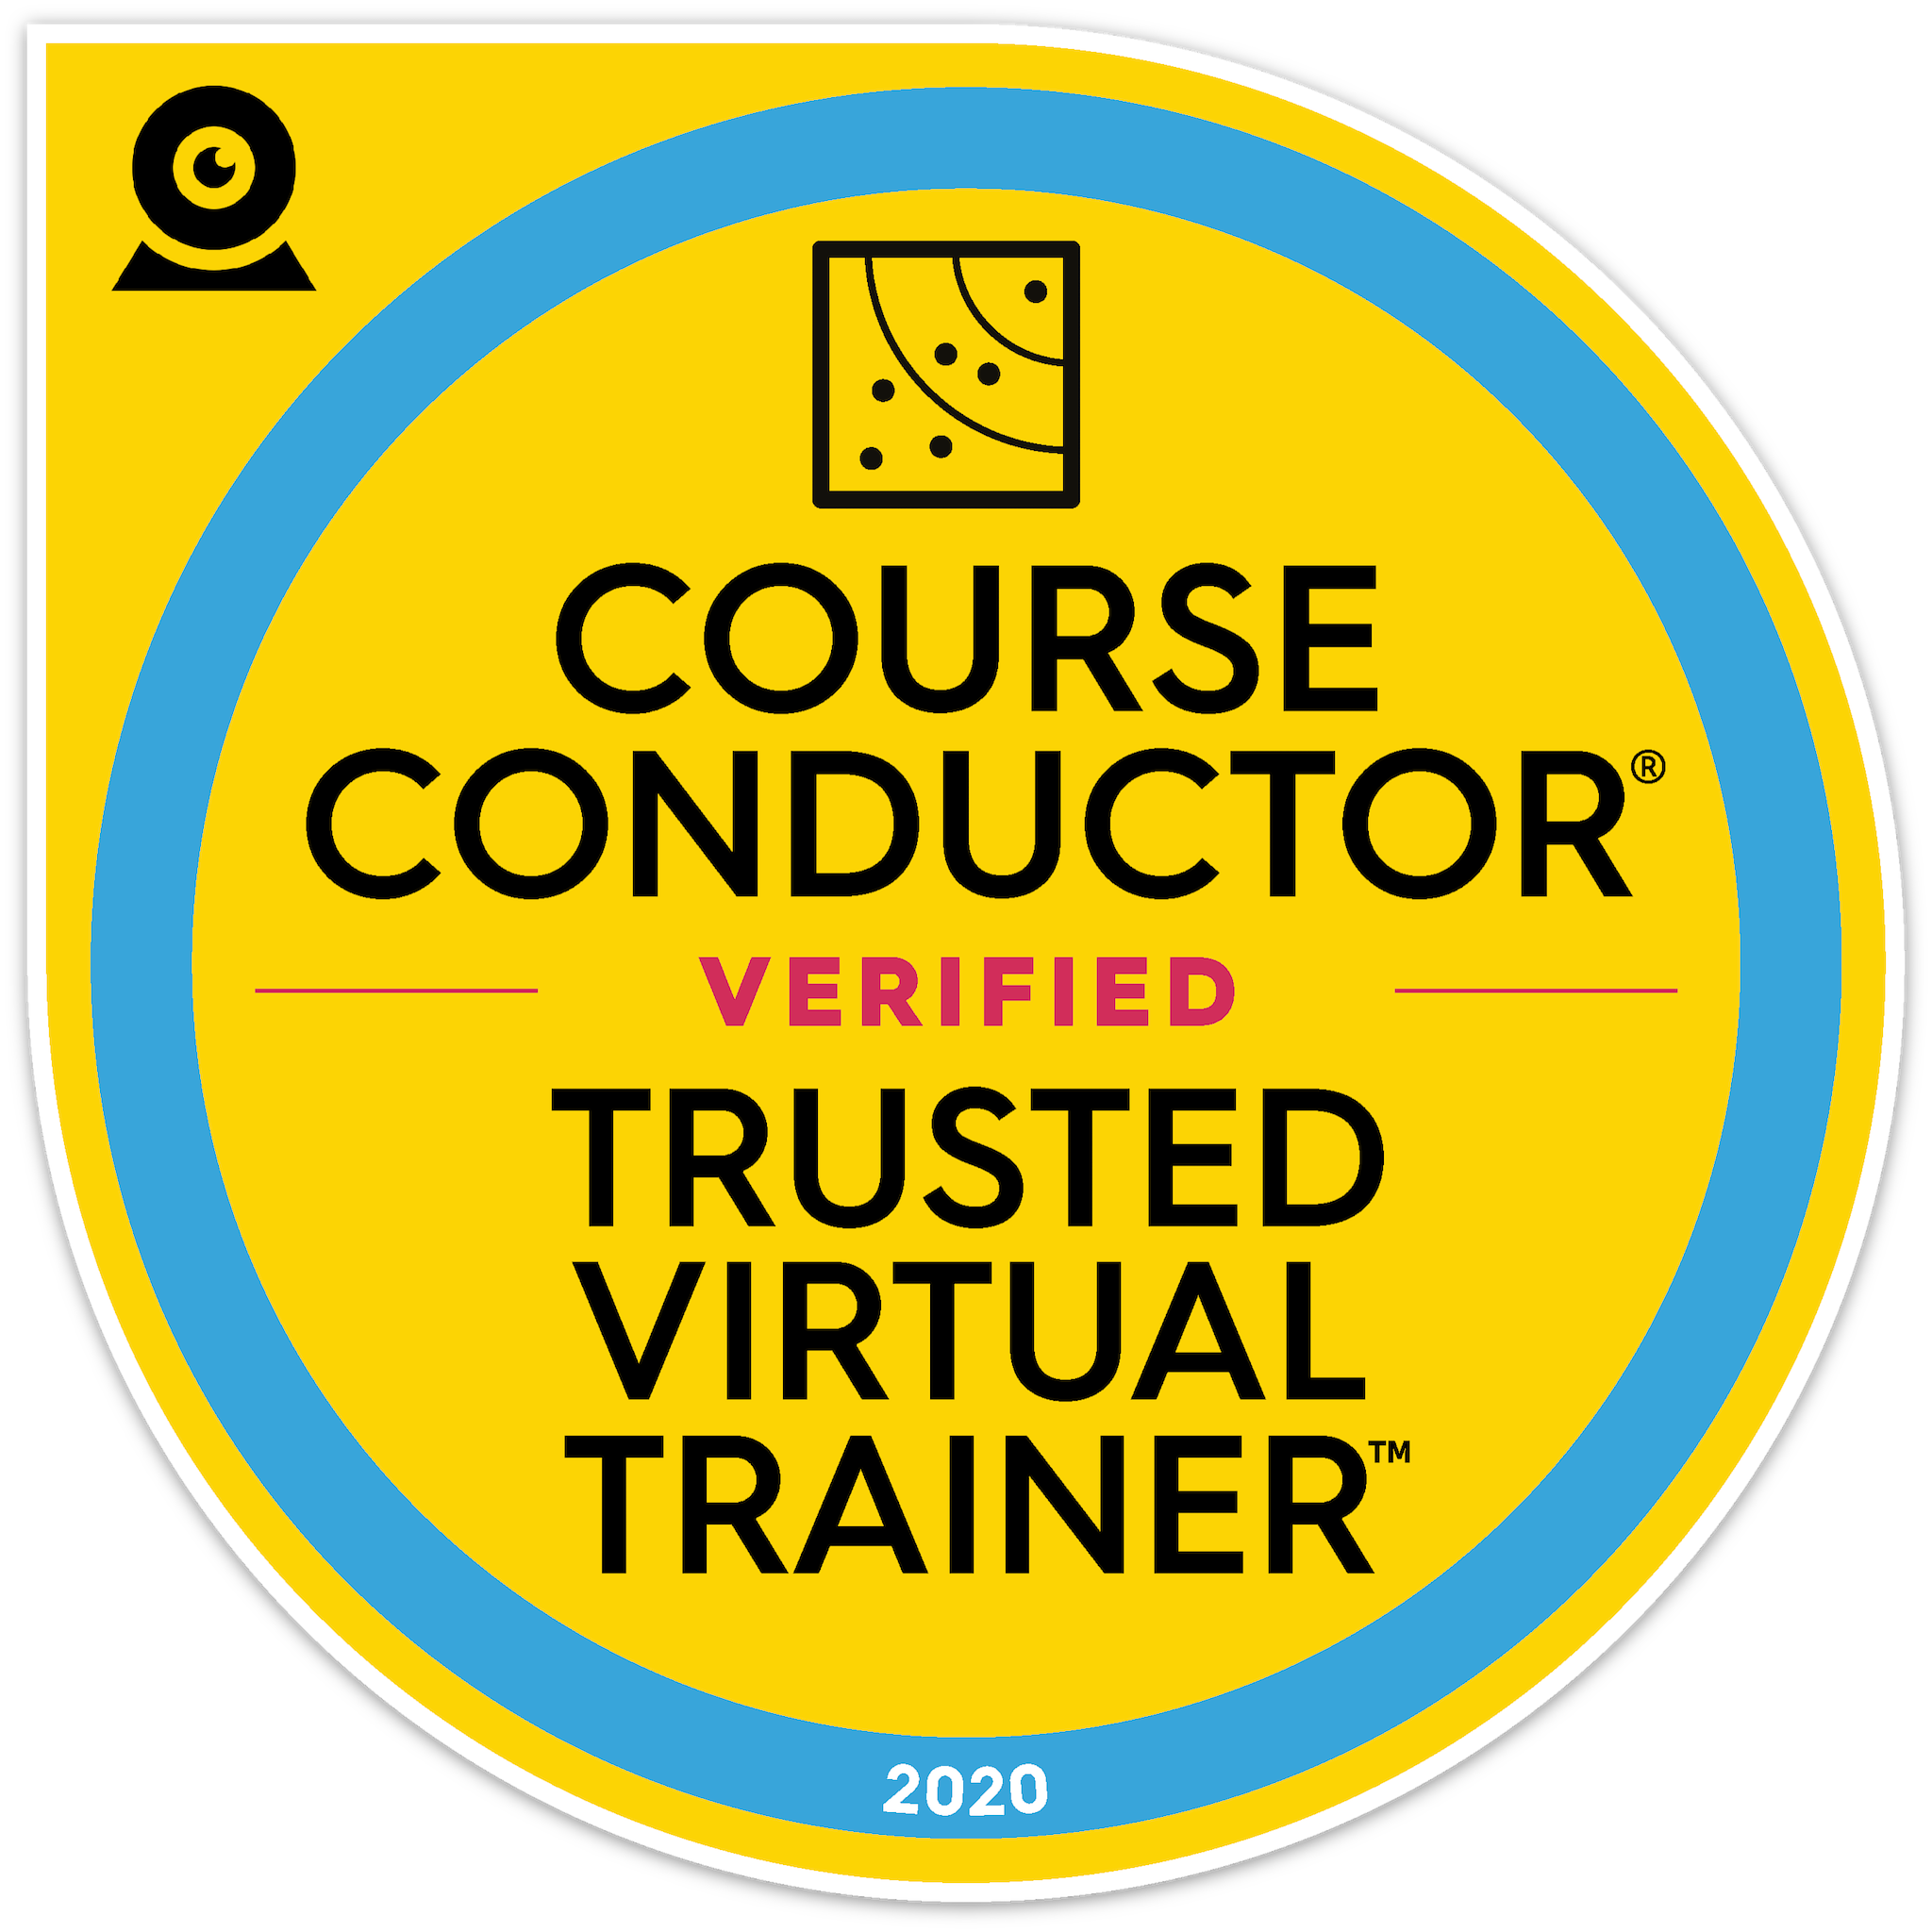 Trusted Virtual Trainer Credential